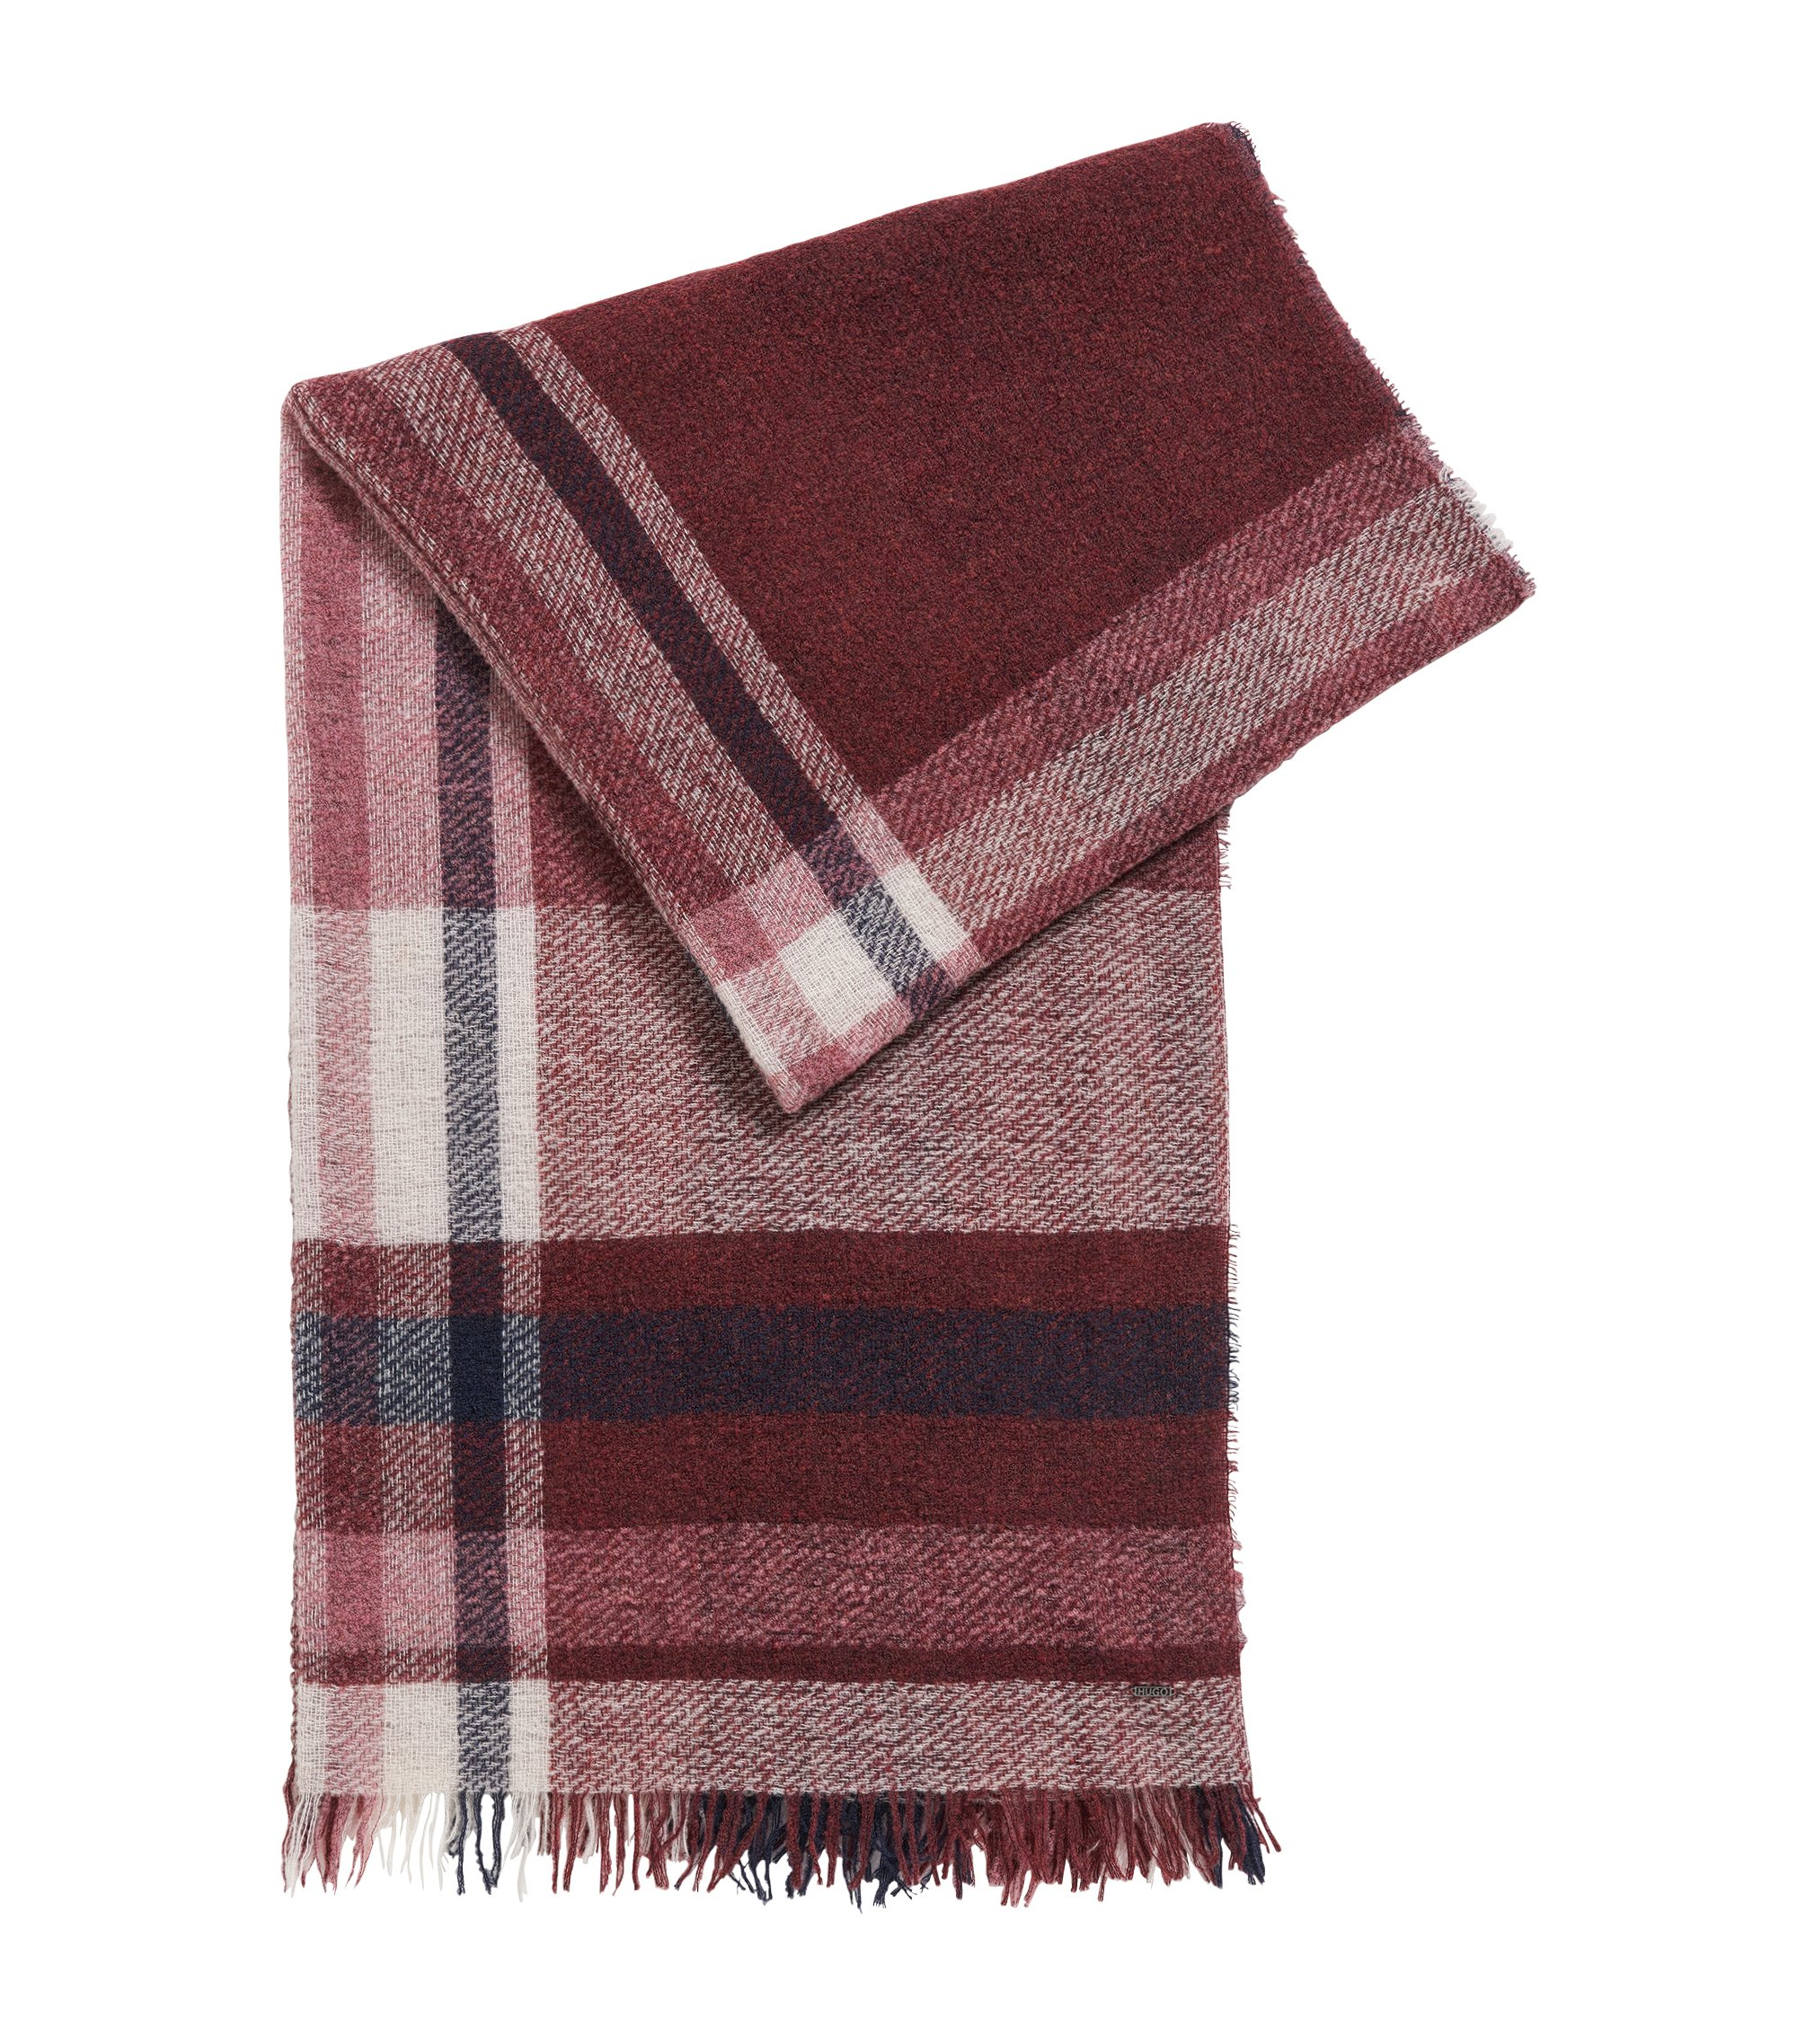 Bouclé virgin wool blend checked scarf, Patterned